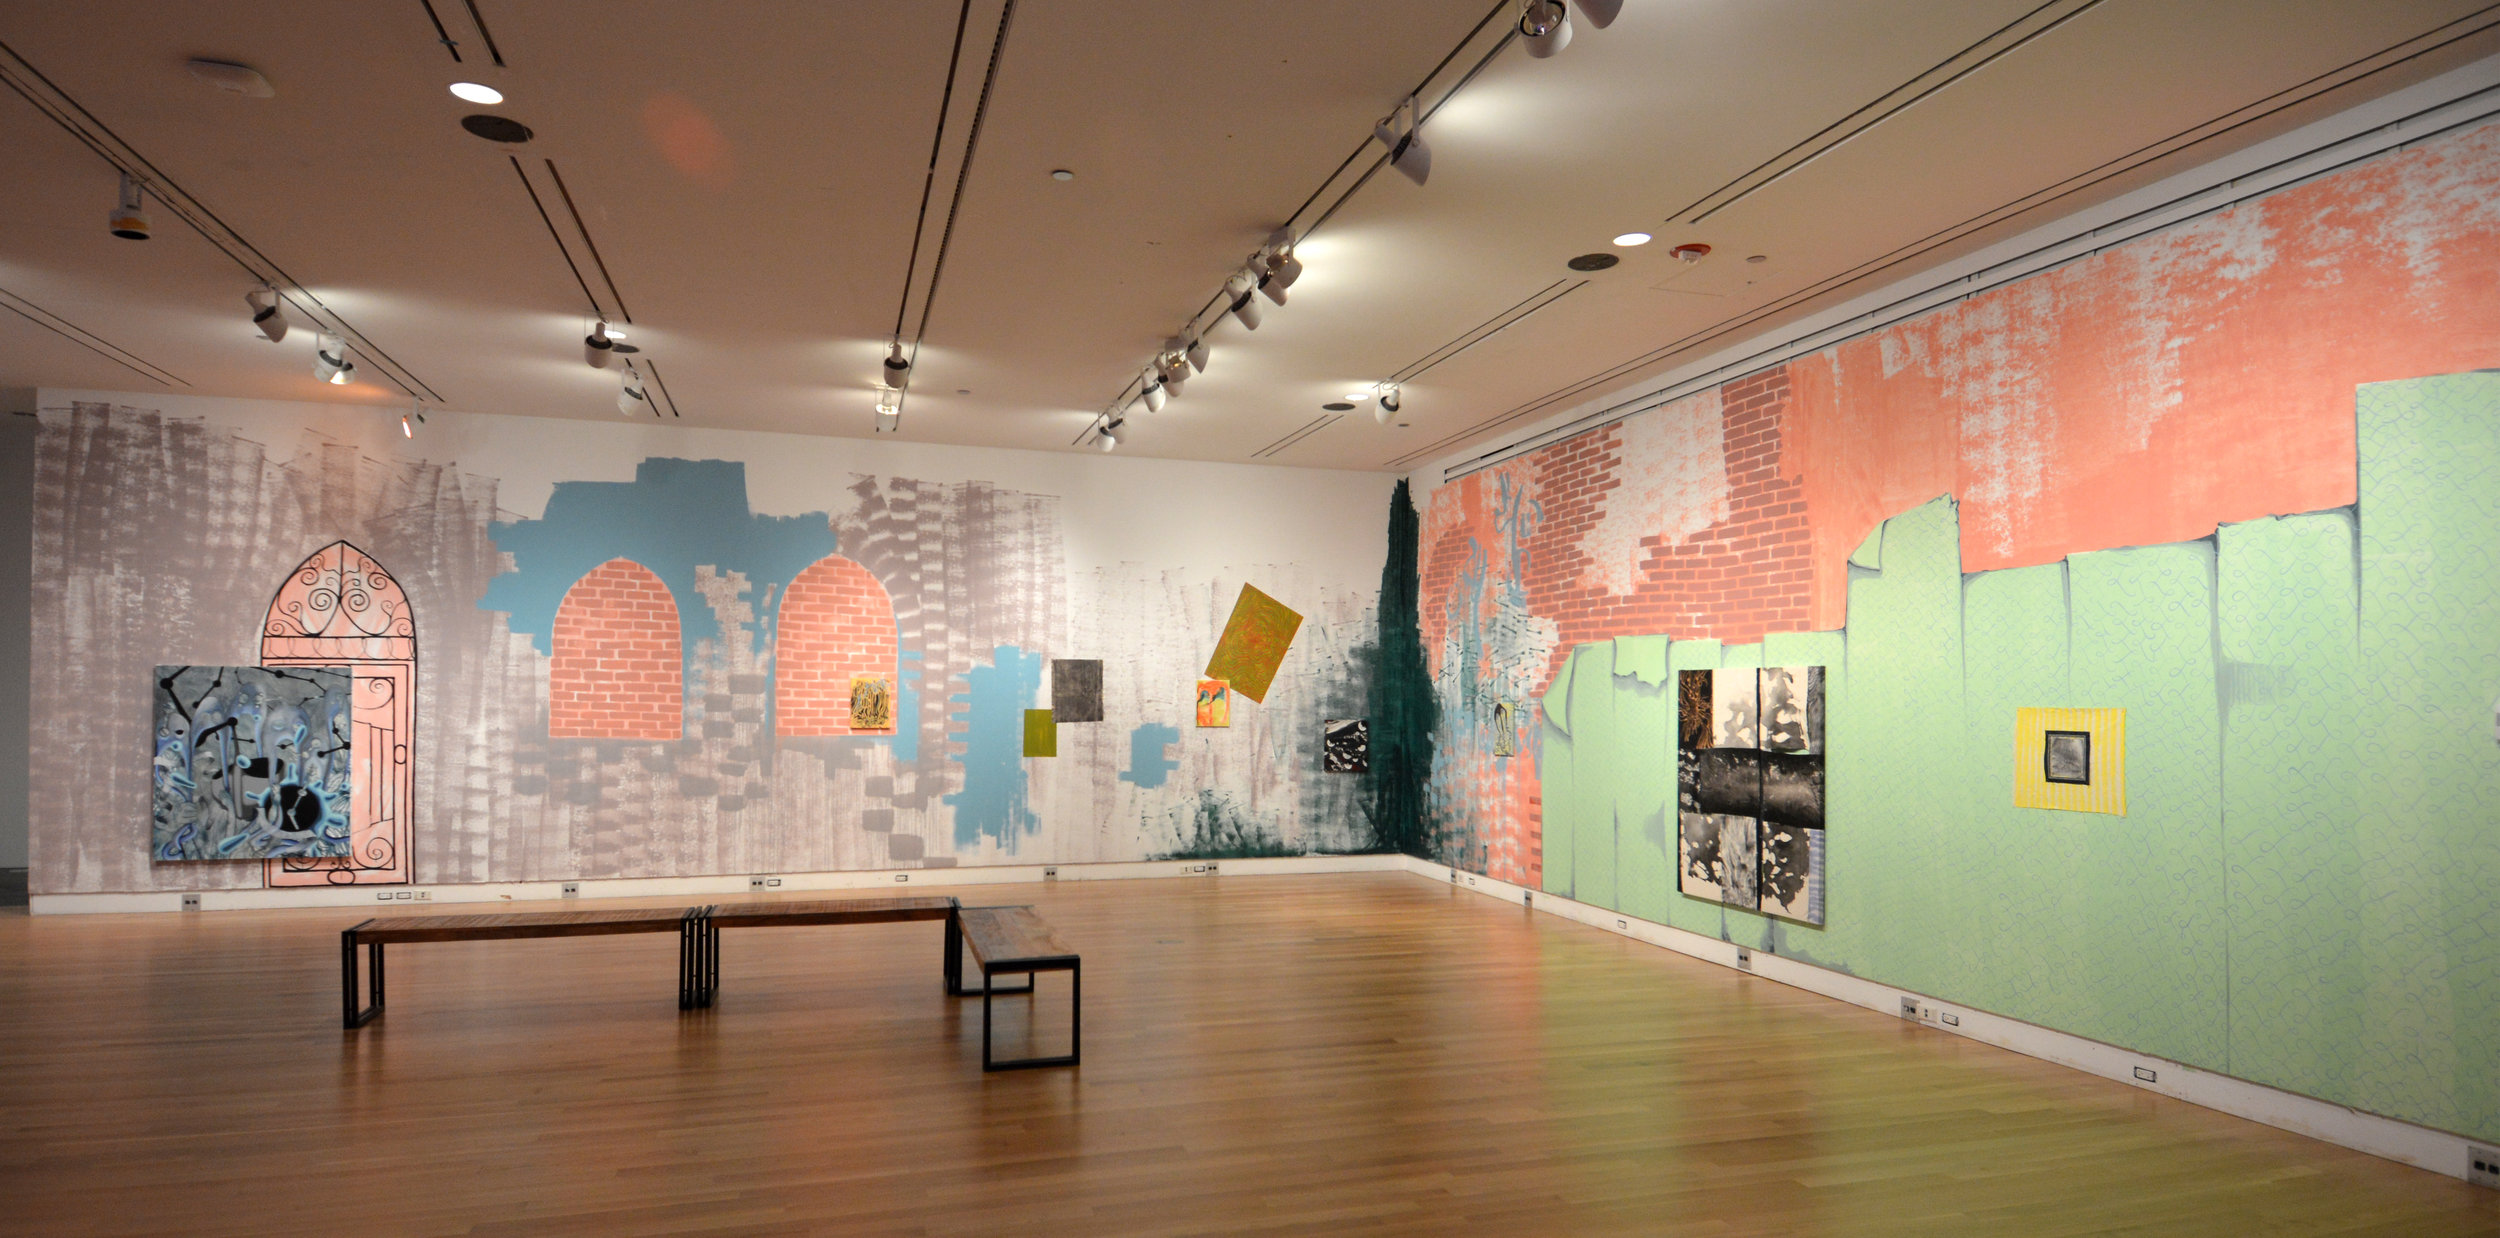 Time Warpage Generator  (image 1)  2017  Vinyl, acrylic, and oil paint on canvas and walls | 12 x 62 feet  Reva and David Logan Center for the Arts